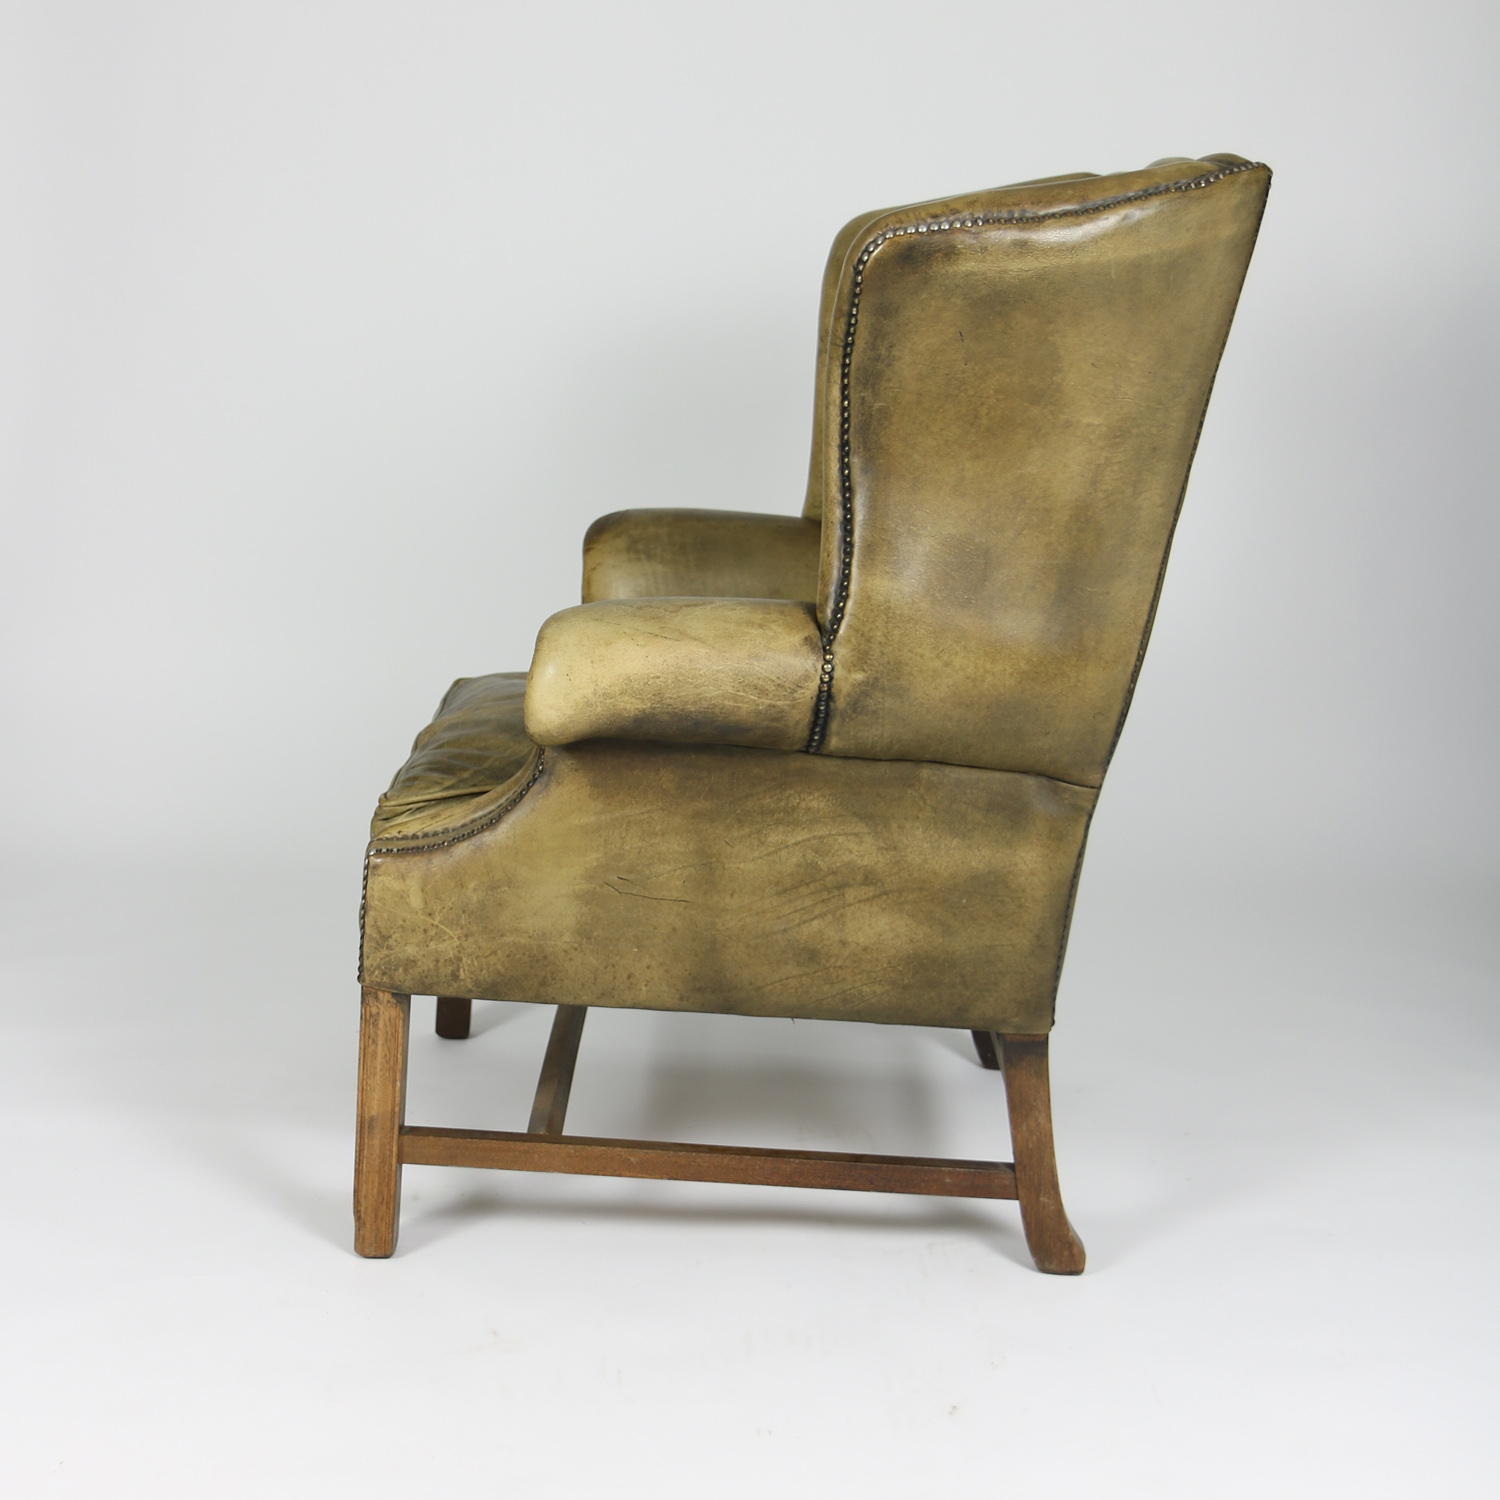 garden court antiques san francisco handsome mahogany and original tufted green leather wing chair